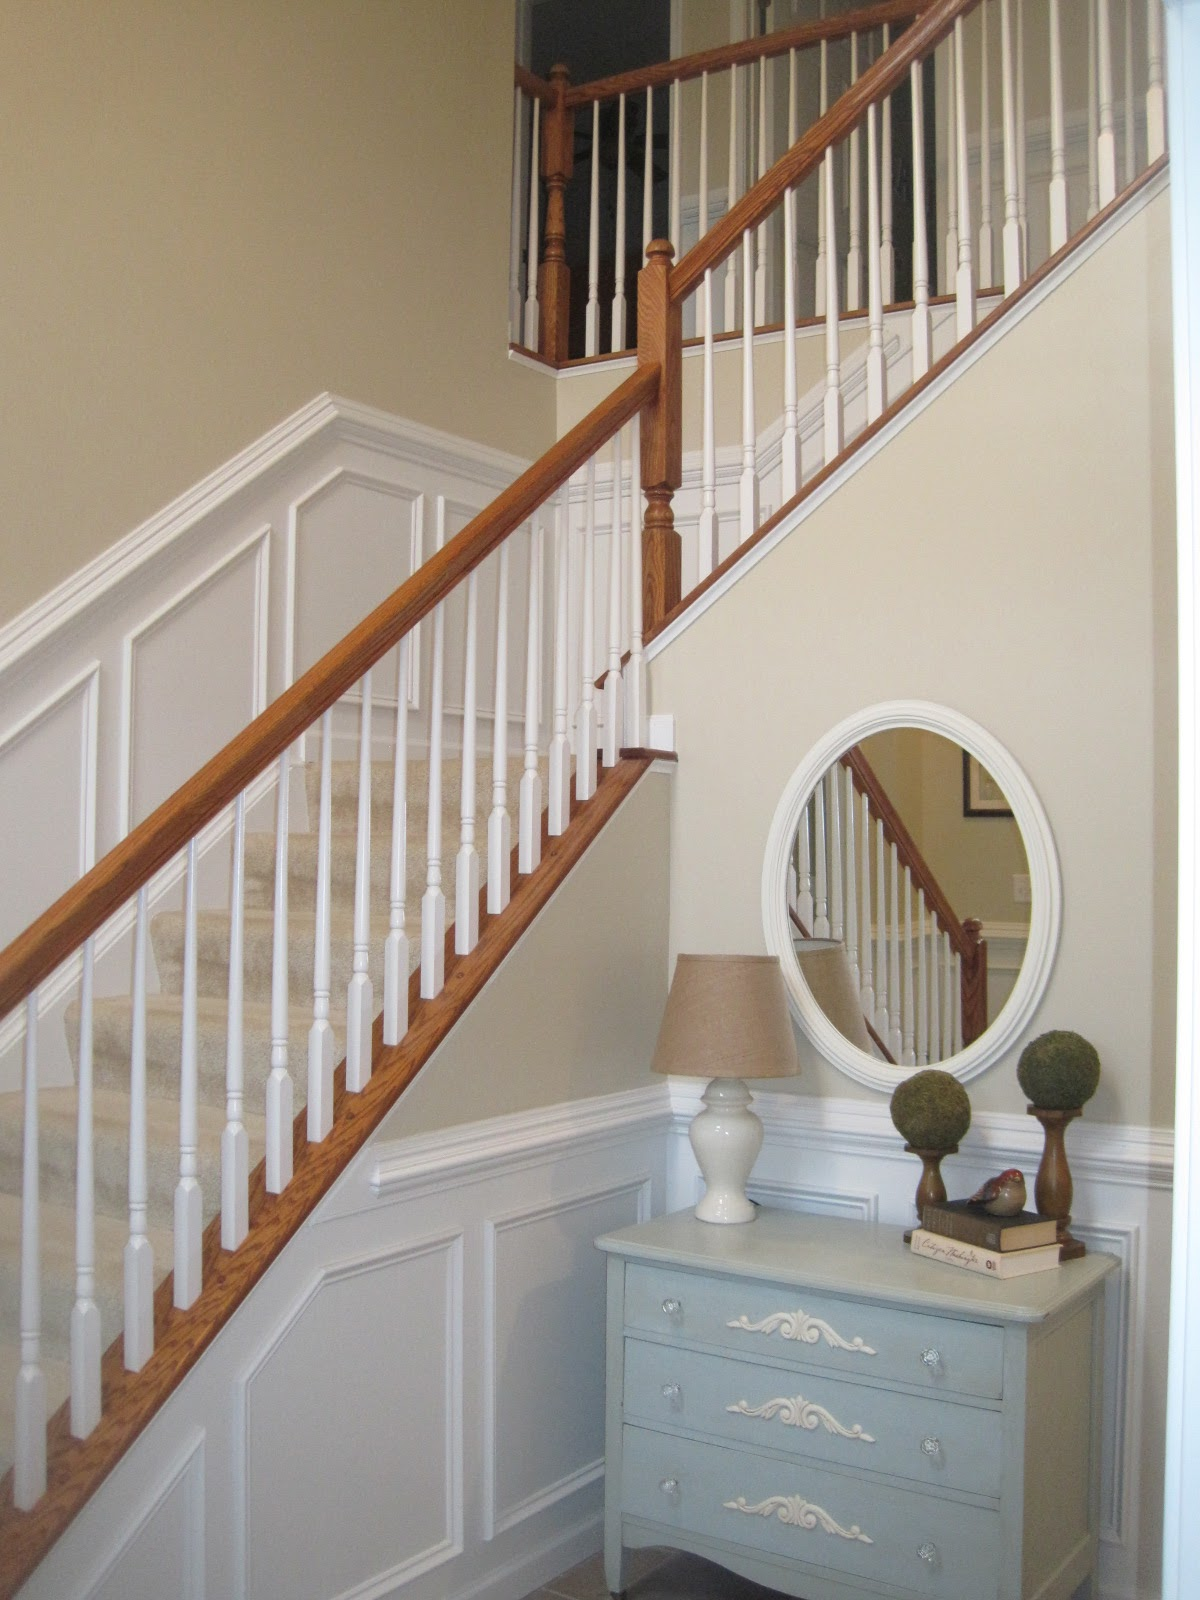 designed to dwell the entryway